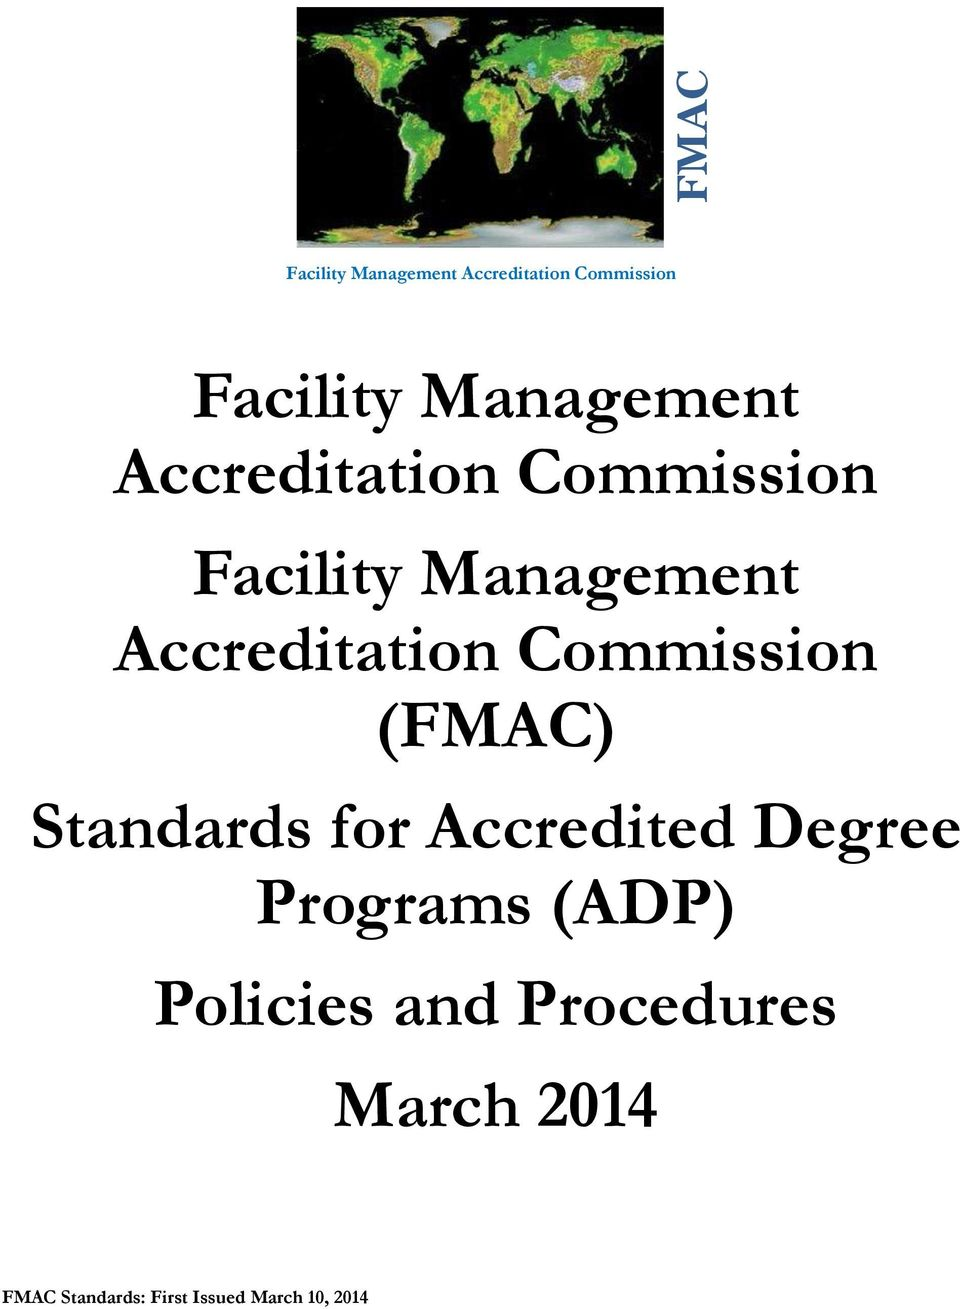 Accreditation Commission (FMAC) Standards for Accredited Degree